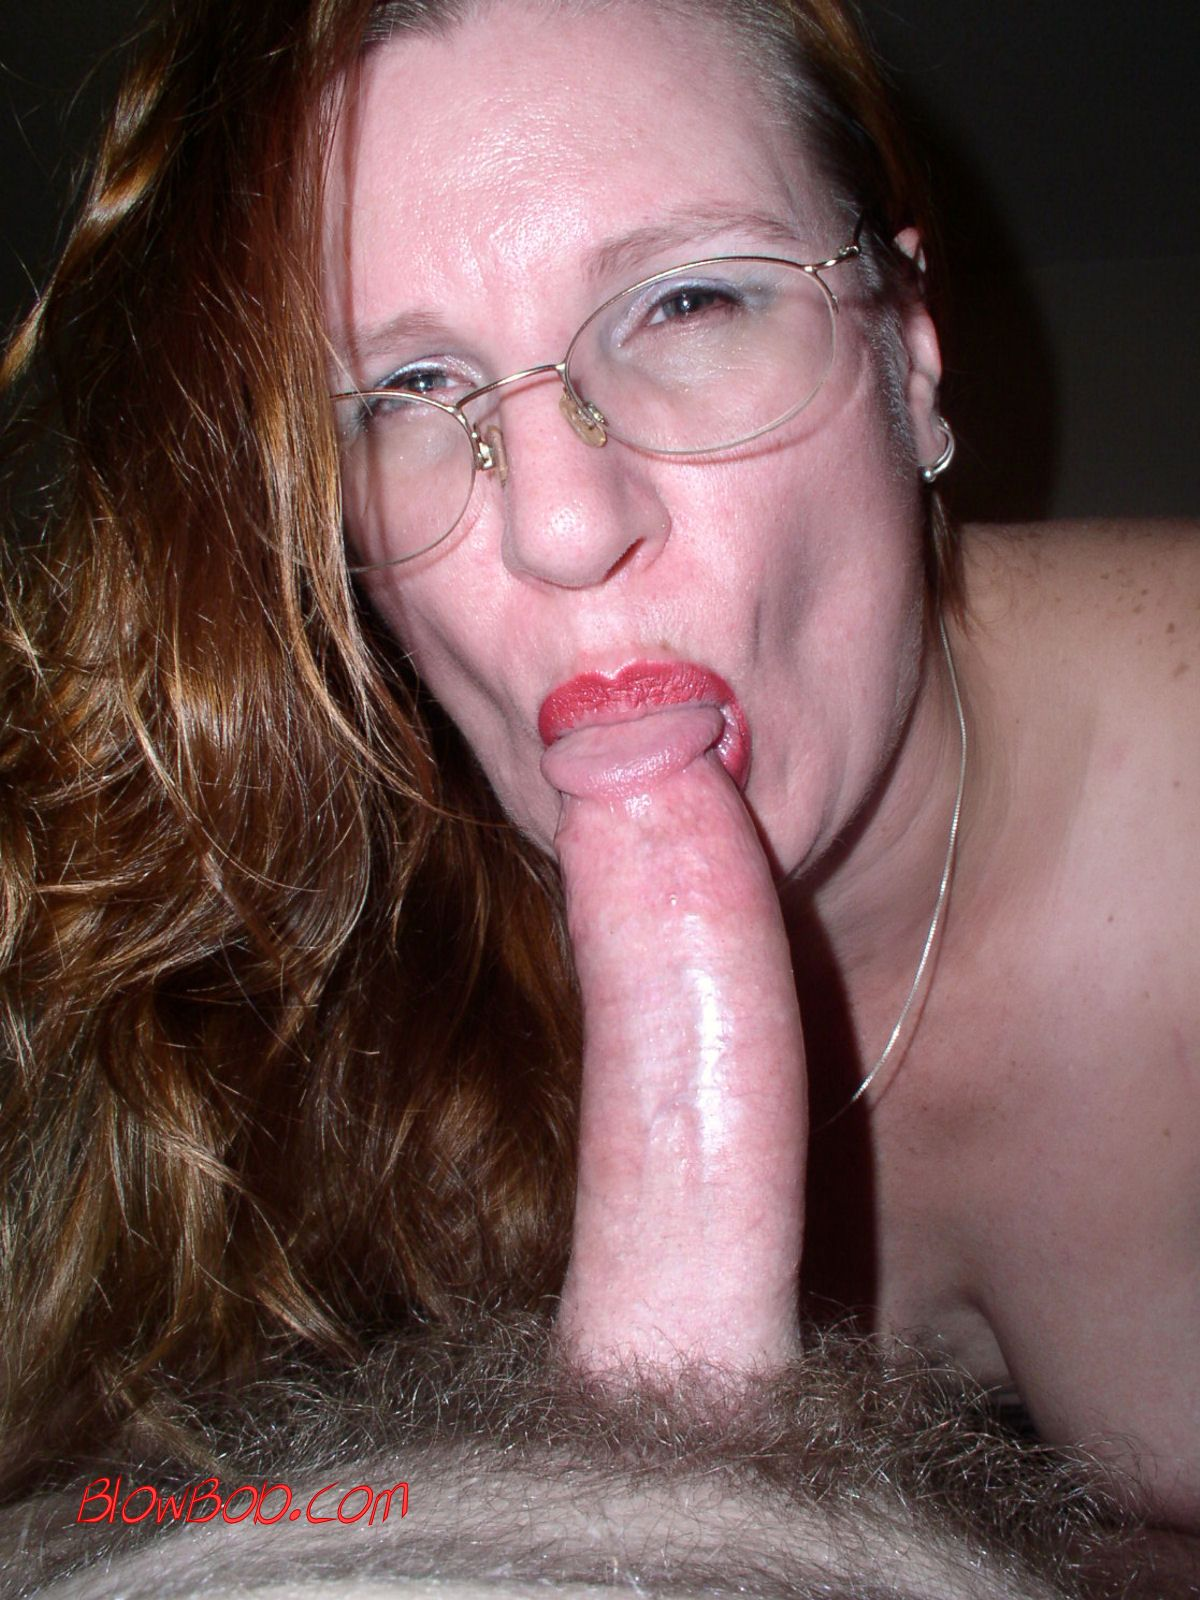 Milf provides a blowjob after date 6